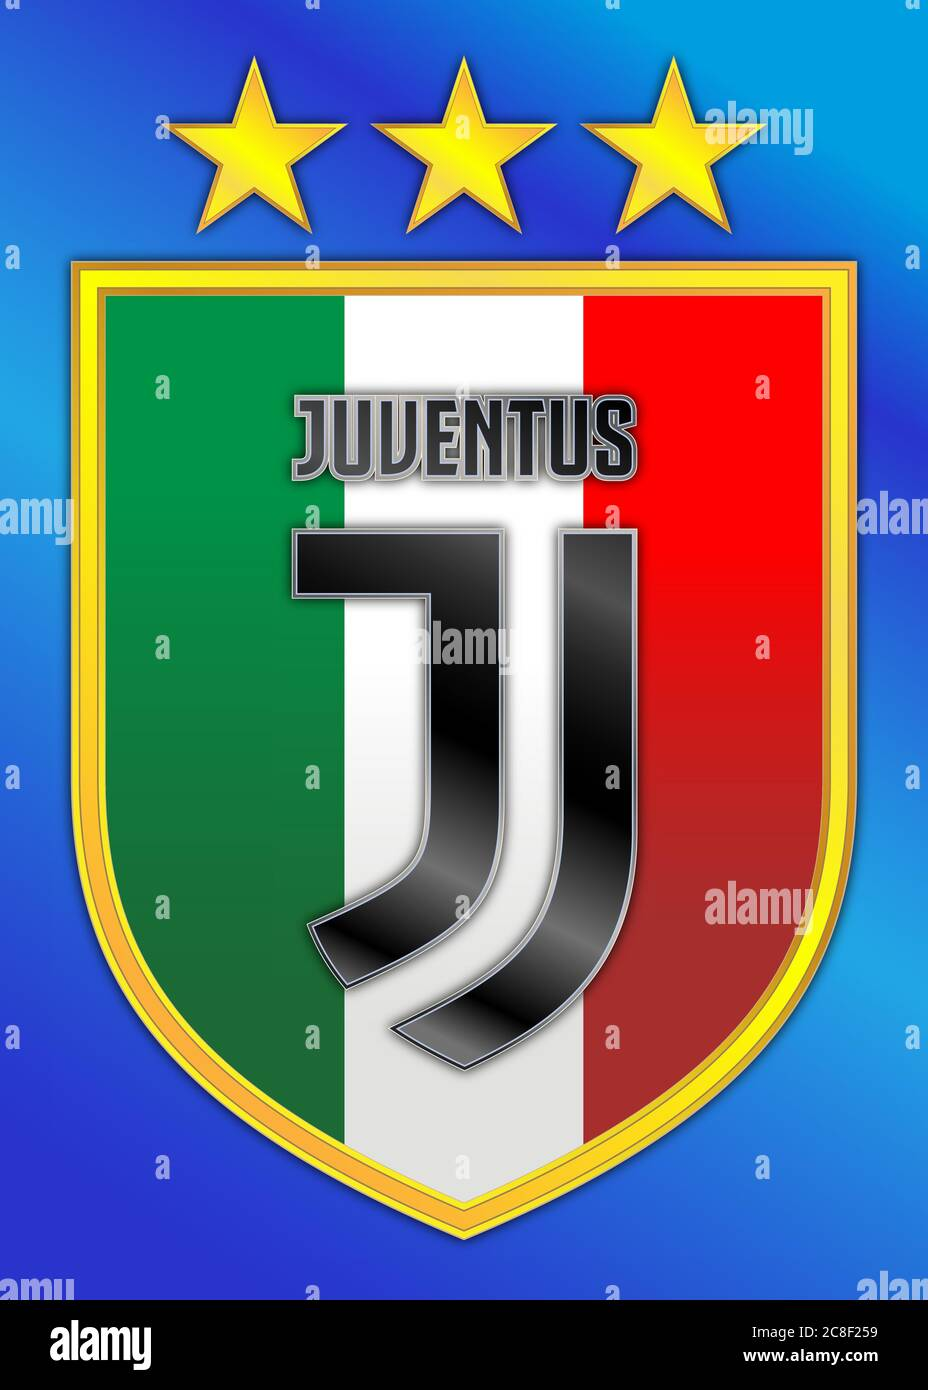 juventus logo high resolution stock photography and images alamy https www alamy com italy 2019 2020 football championship juventus champion of italy team logo on shield and three gold stars graphic illustration image366665973 html